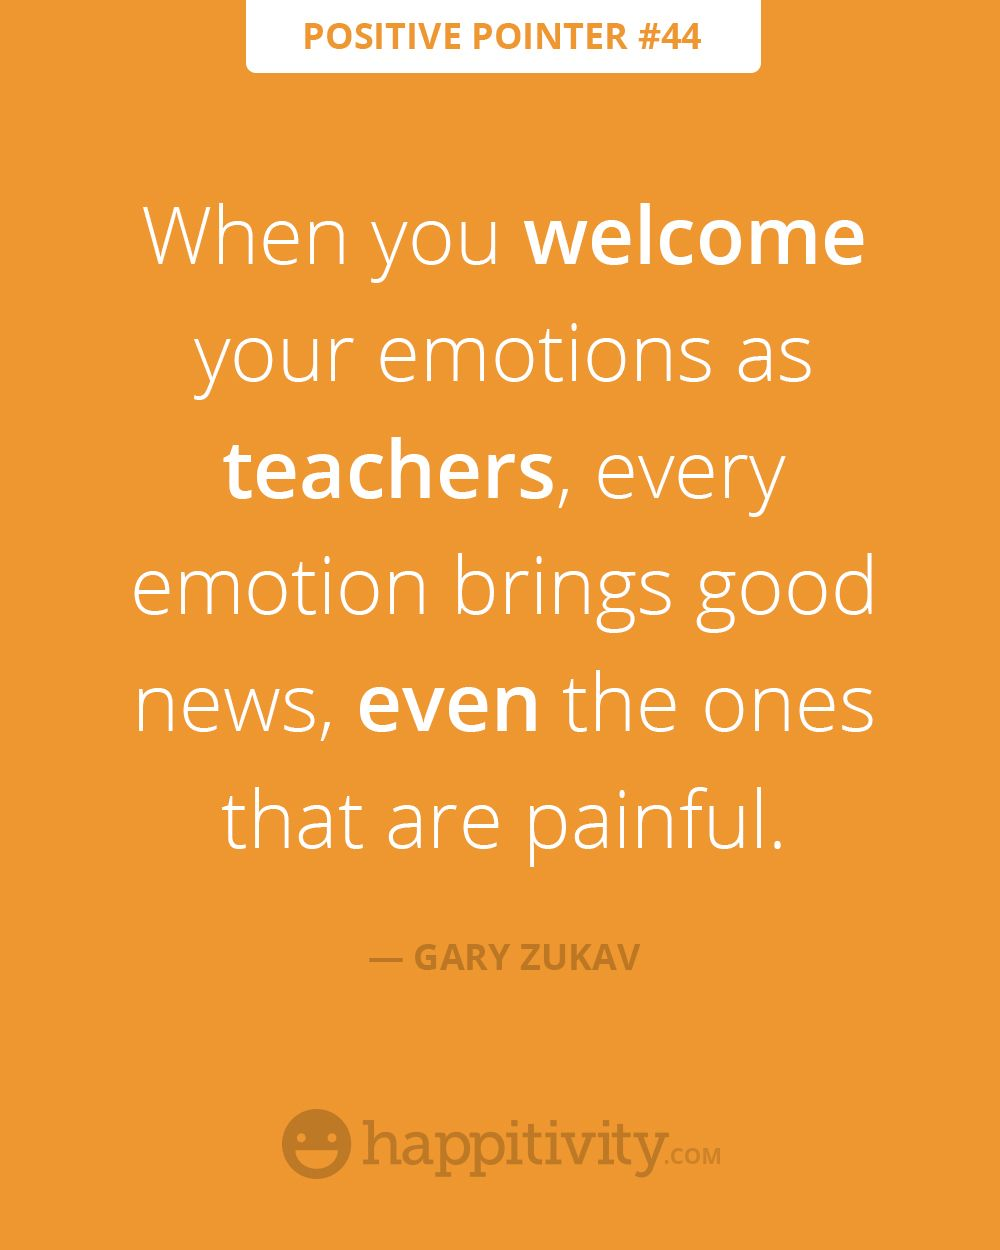 Welcome your emotions as teachers! :) www.happitivity.com #emotion #positivepointer #quote